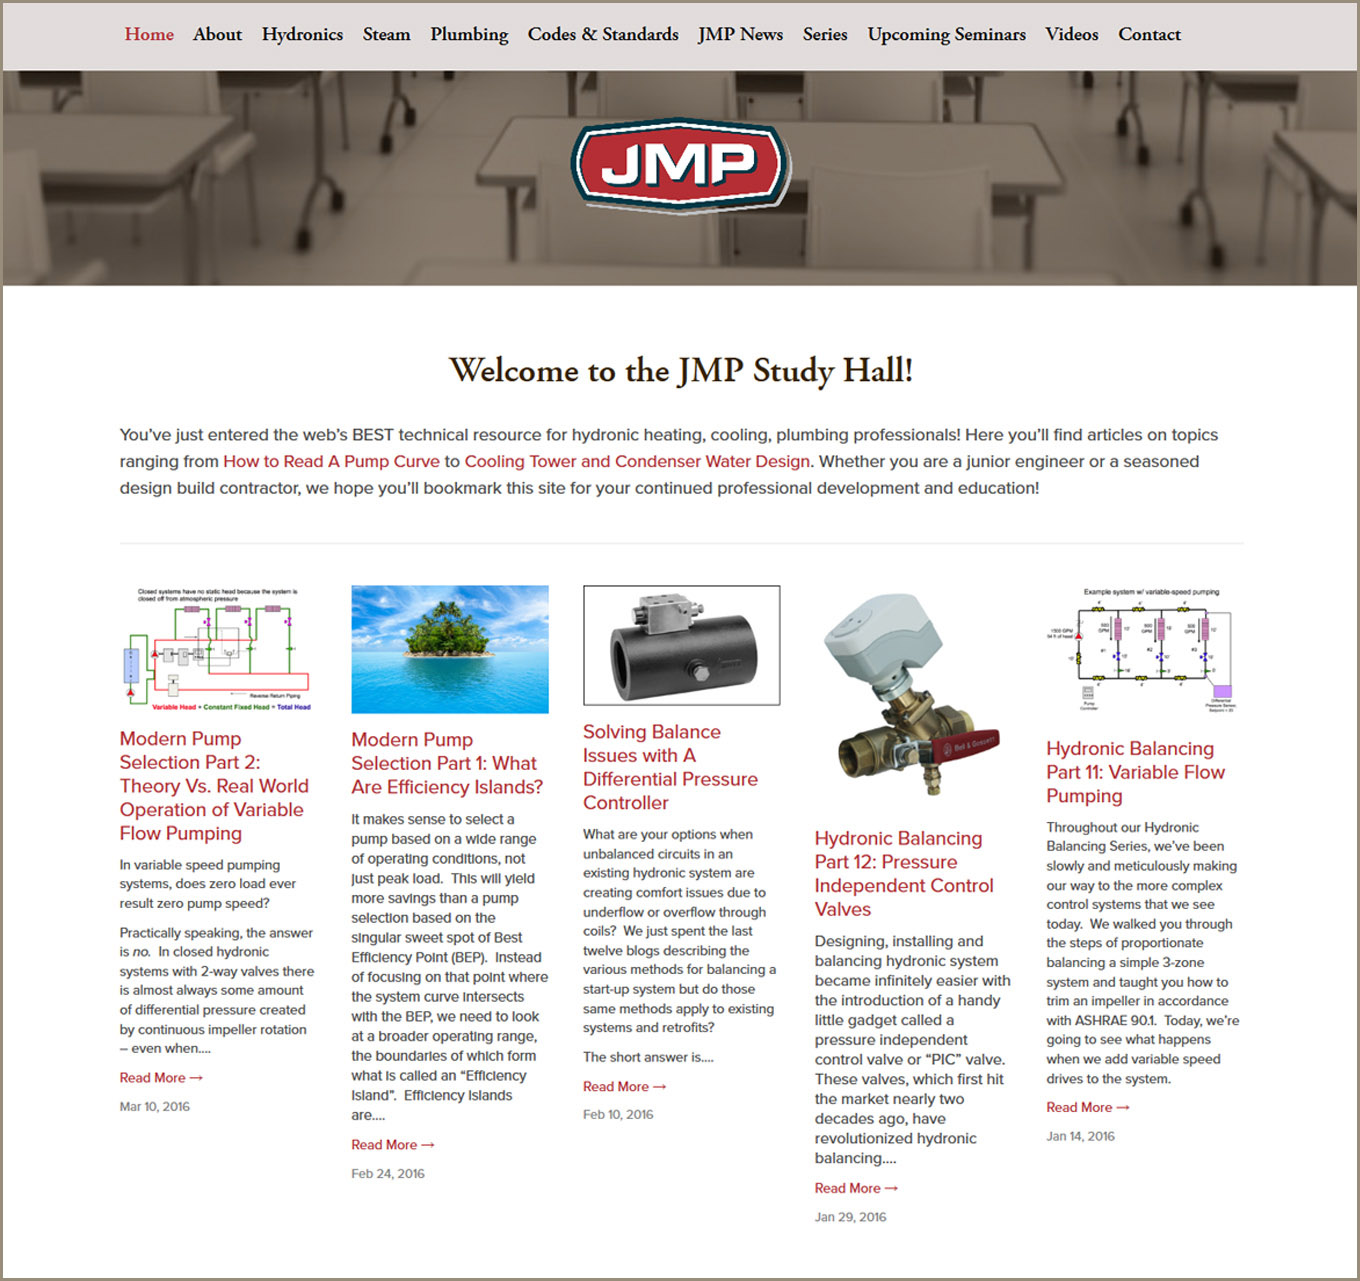 James-M-Pleasants-Company-home-page-hvac-writing-by-trish-holder-marketing-communications.jpg